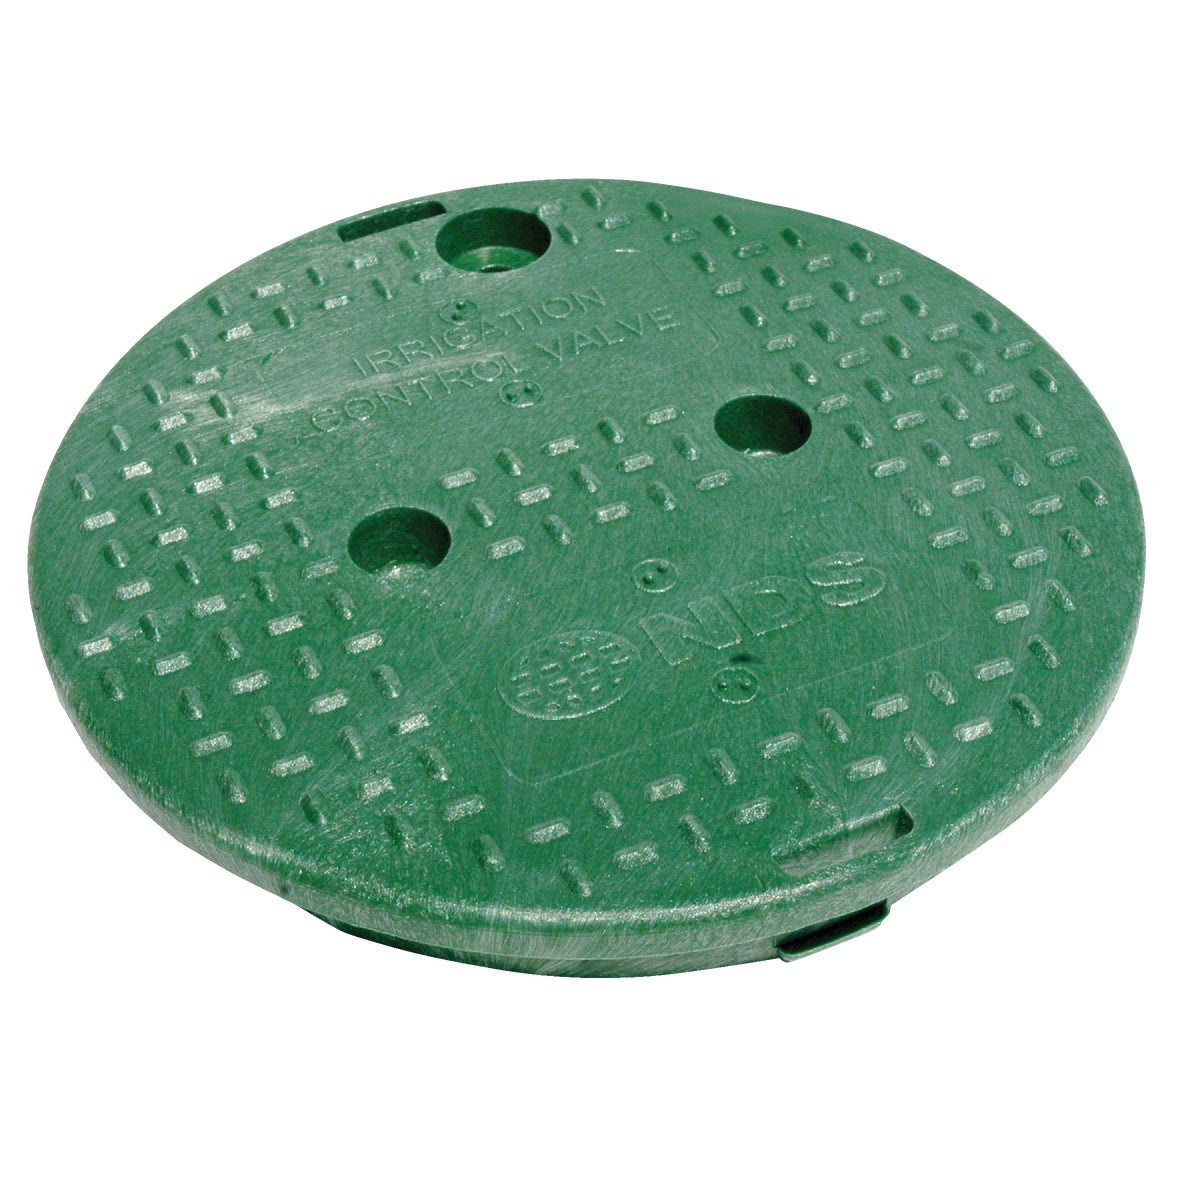 "10"" ROUND COVER - 111C by National Diversified"